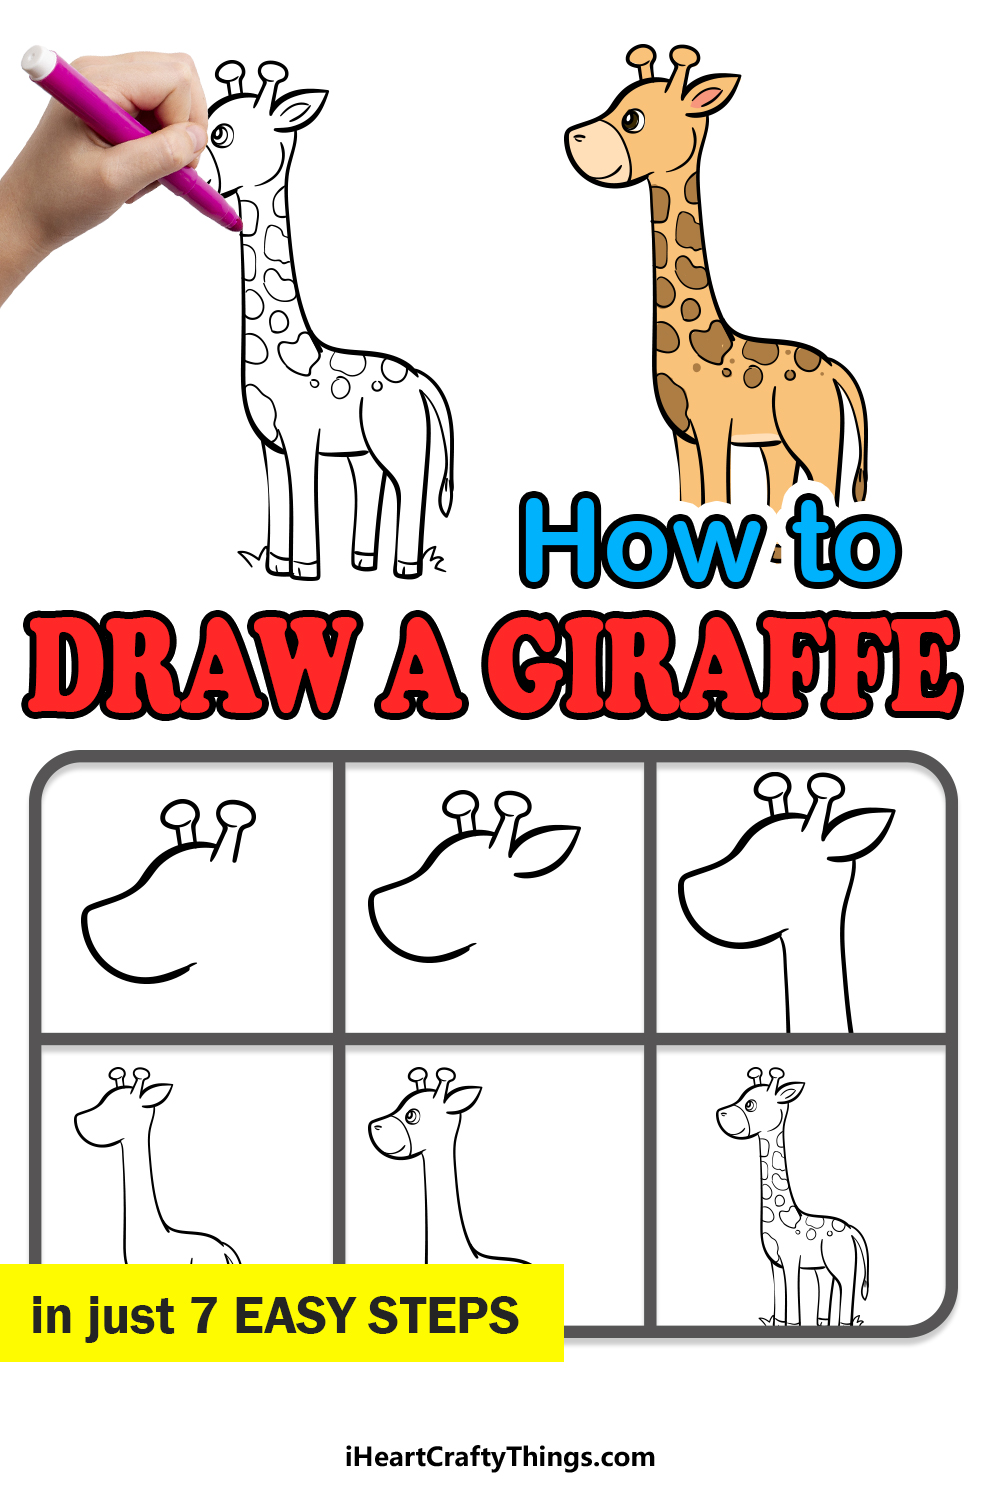 how to draw a giraffe in 7 easy steps